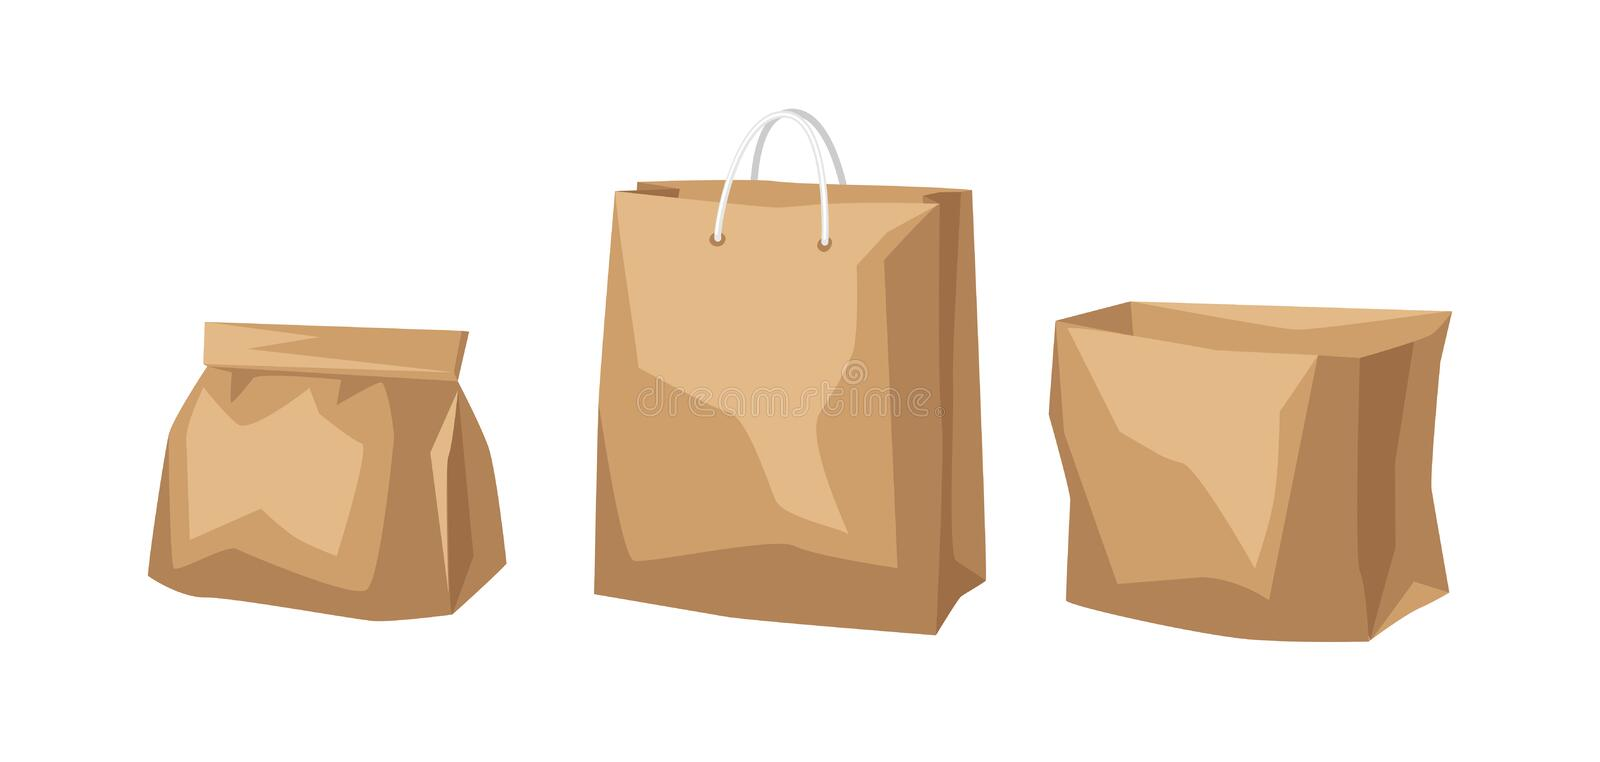 Set of paper bags. Fast food packaging. Isolated on white background vector illustration